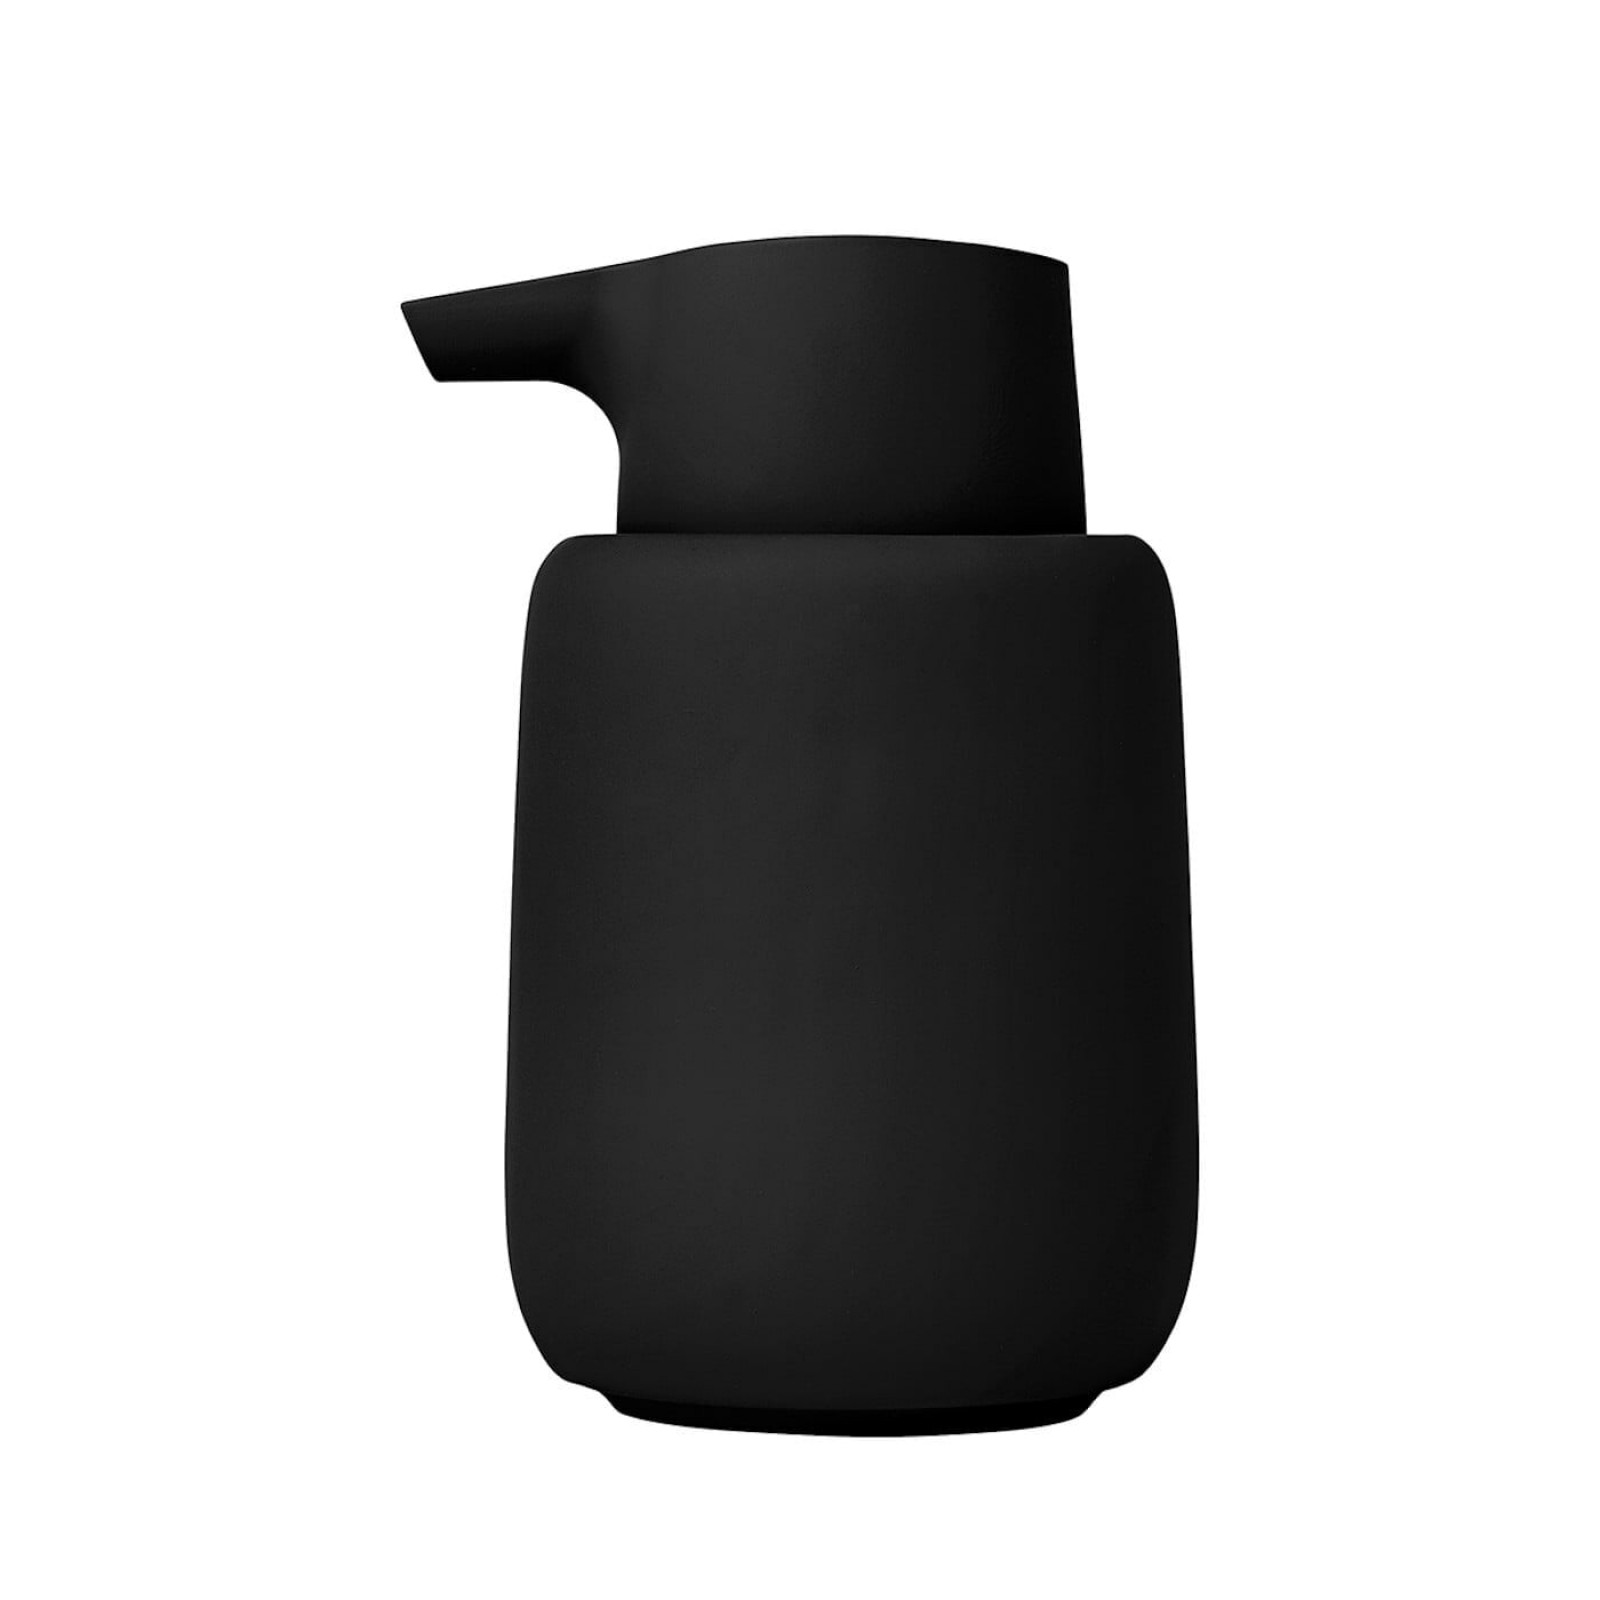 SONO Soap Dispenser (Black) - Blomus